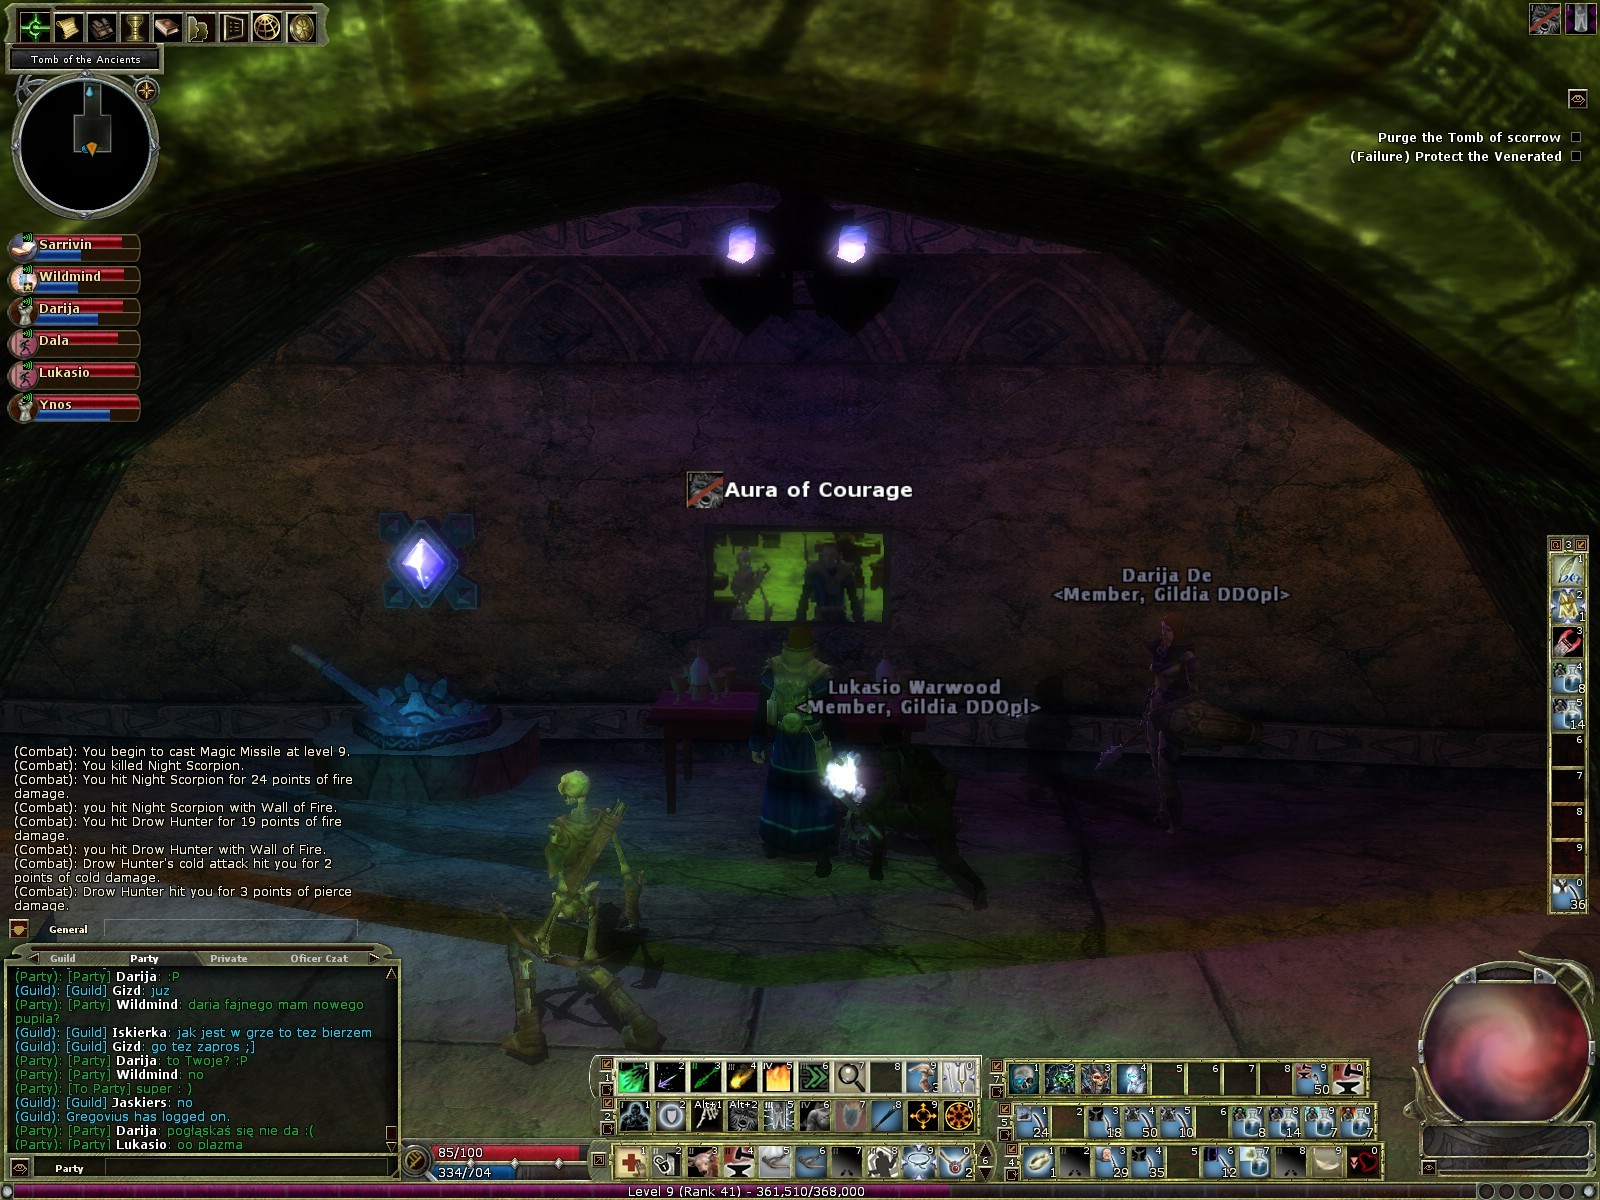 Dungeons &amp; Dragons Online - DDO: LCD Screen in Dungeon? Or is it a simple mirror? :P